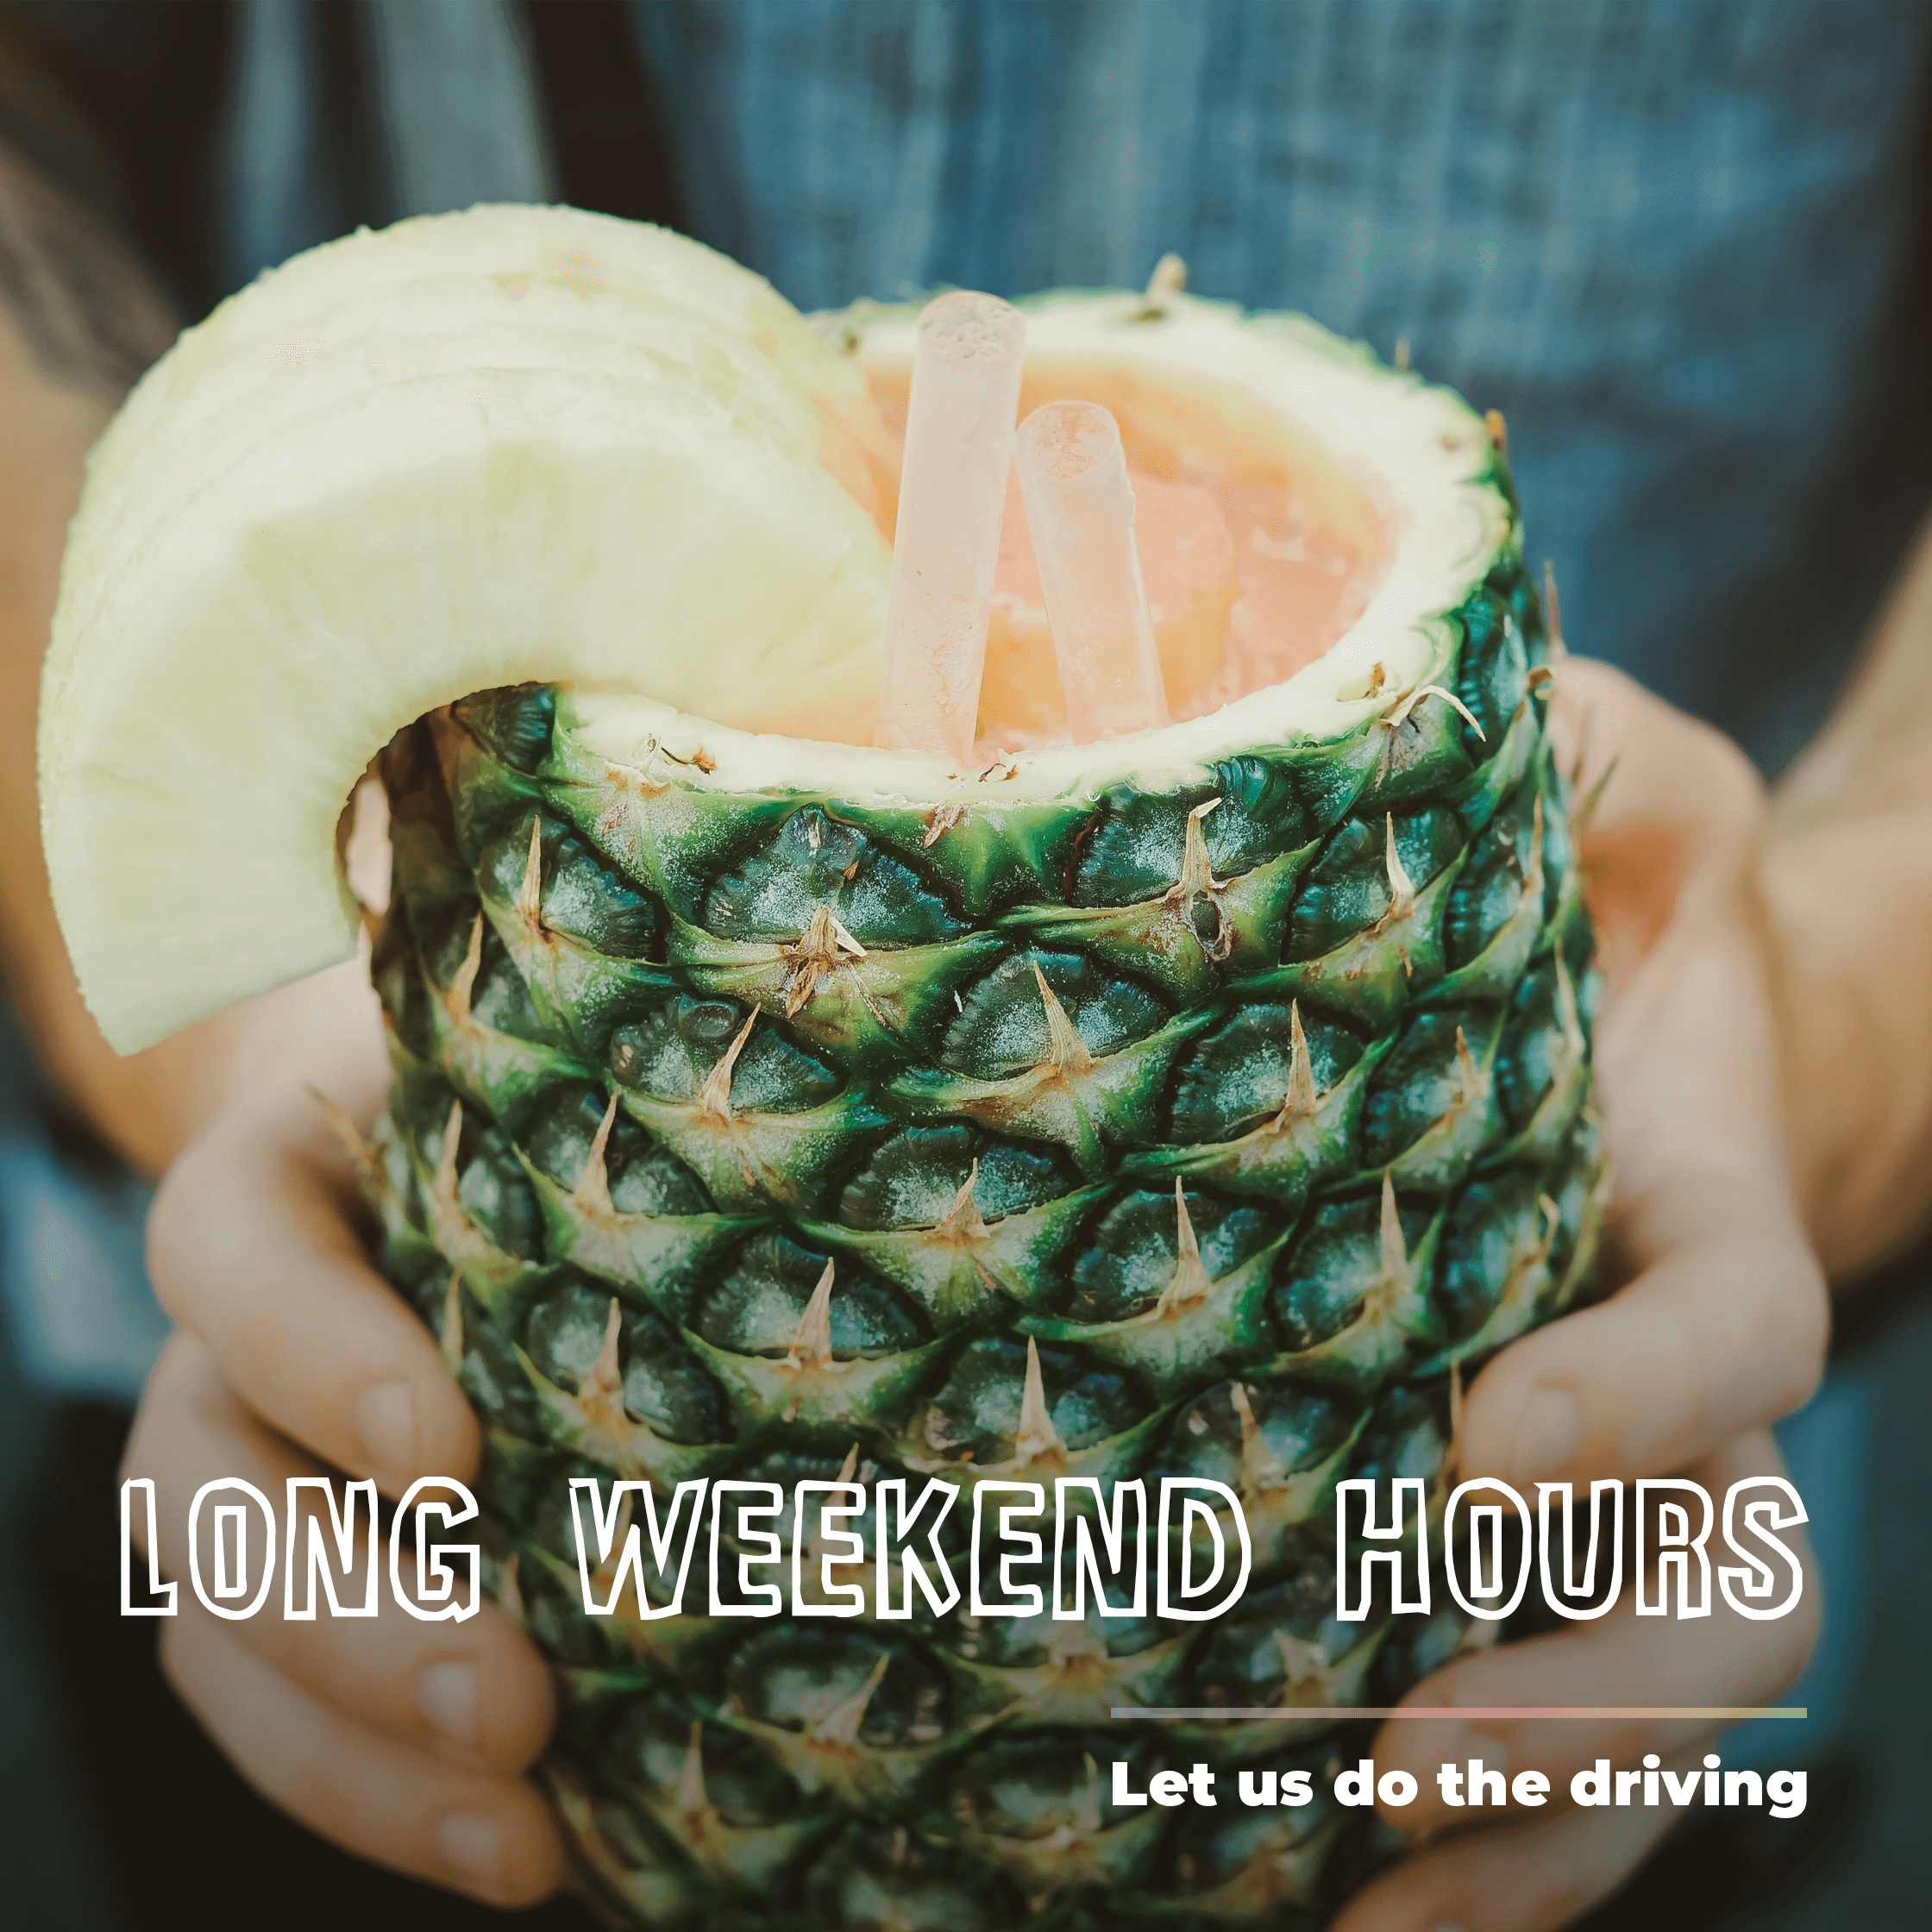 Man holding pineapple drink - long weekend hours